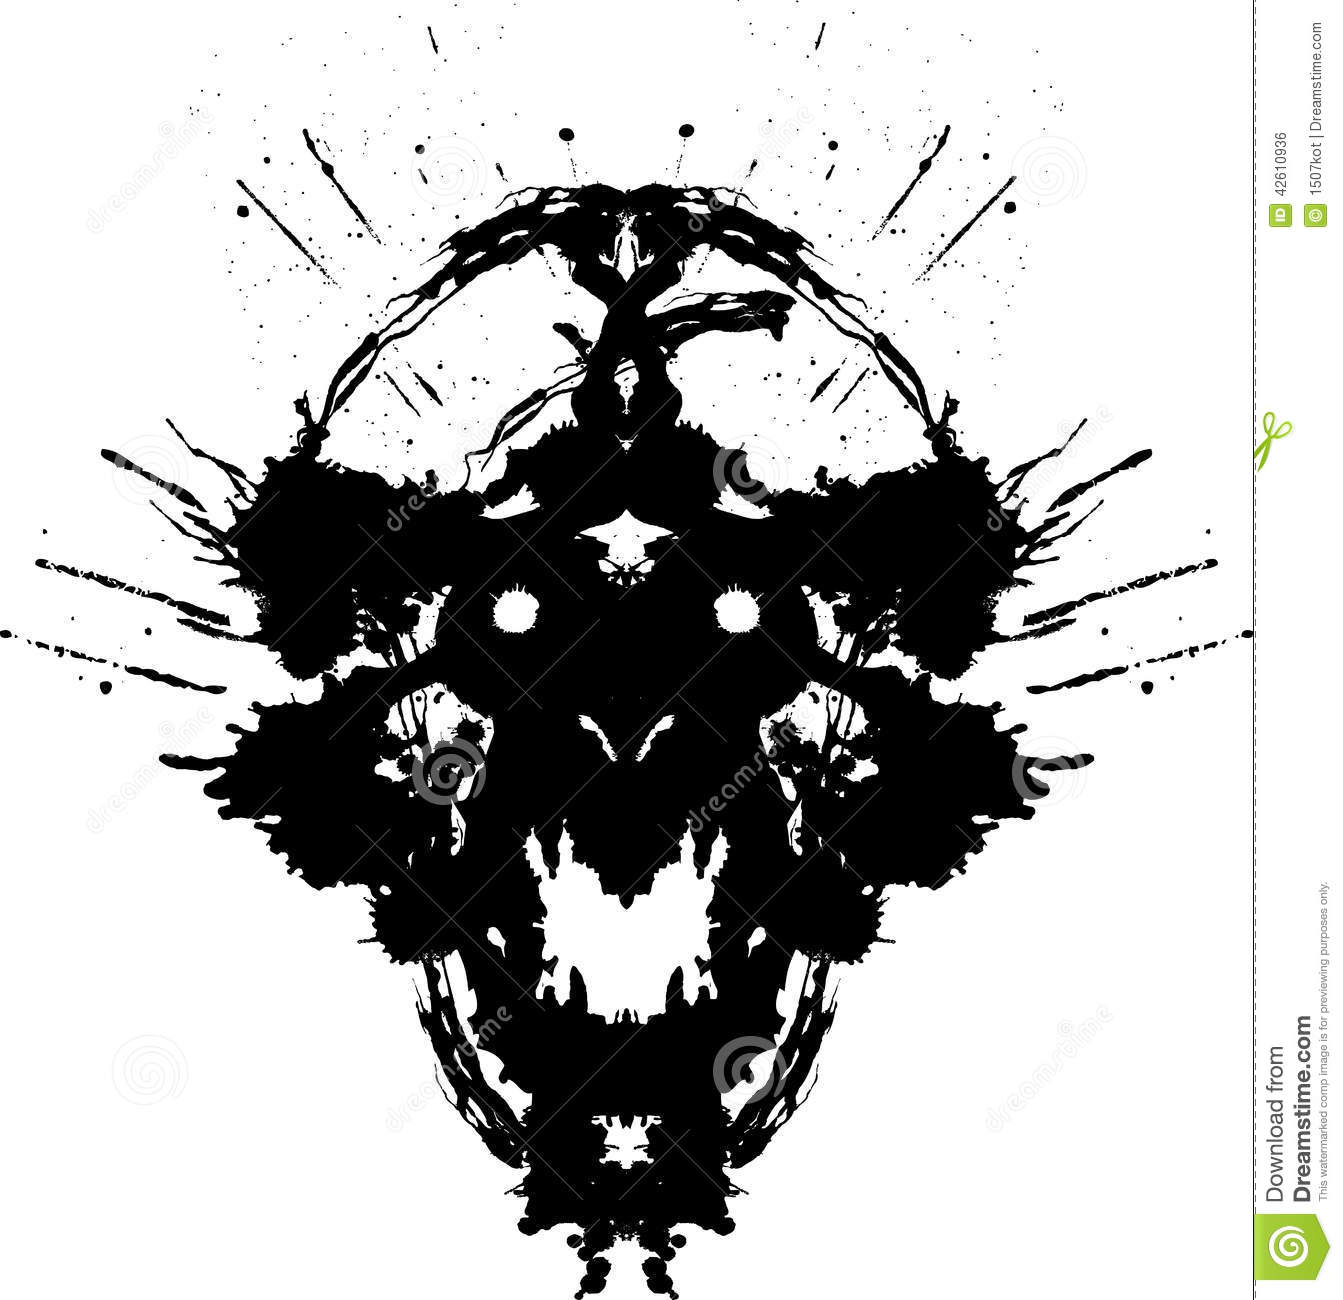 Silver Animal Print Wallpaper Scary Demon Stock Vector Illustration Of Horror Computer